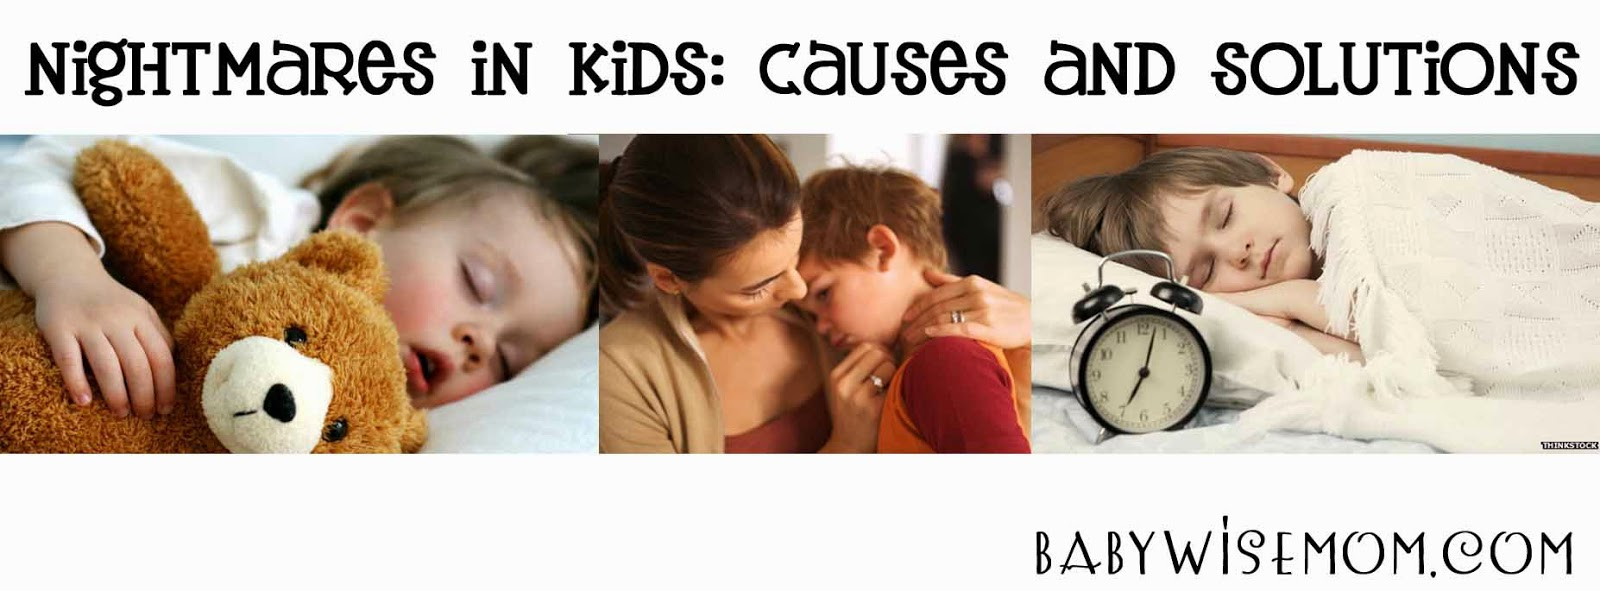 NIGHTMARES IN KIDS: Causes and Solutions {Guest Post